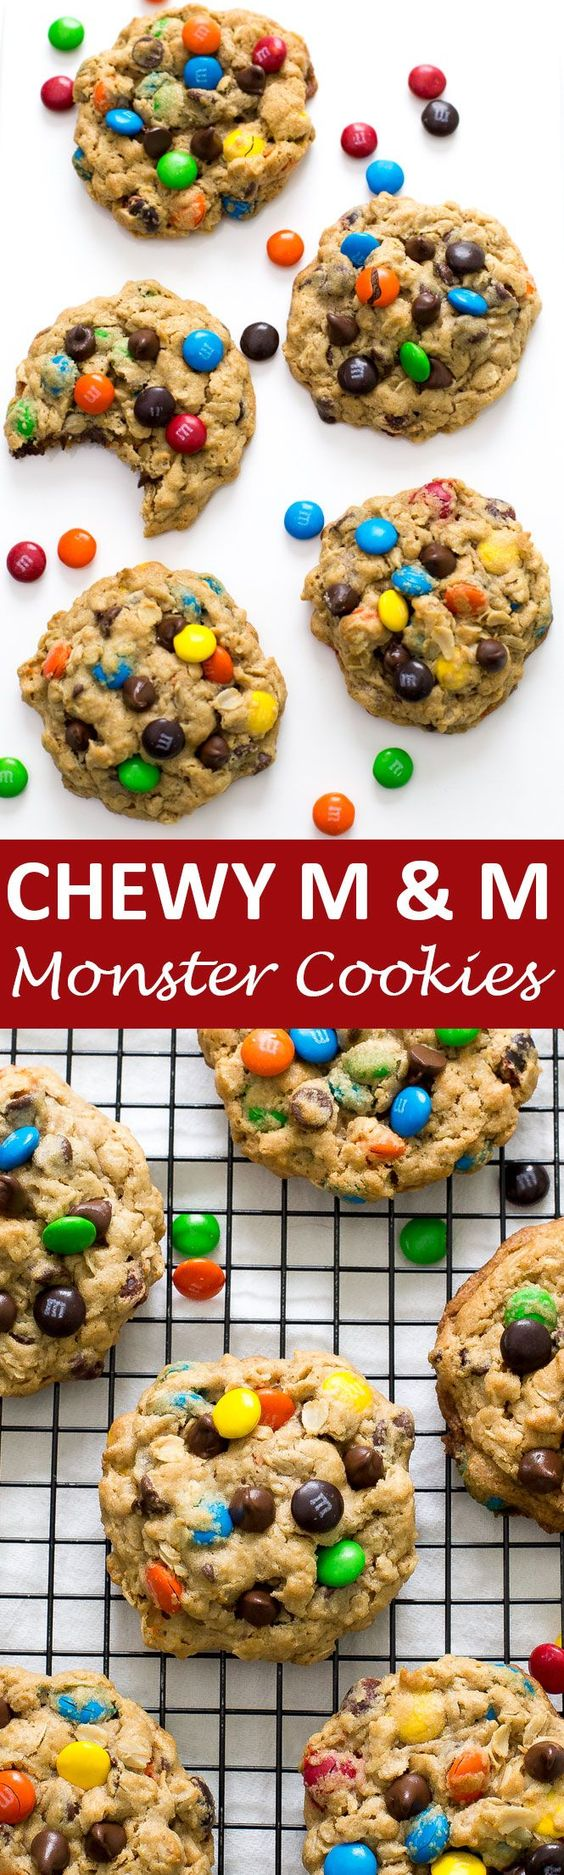 Thick and Chewy Monster M & M Cookies: